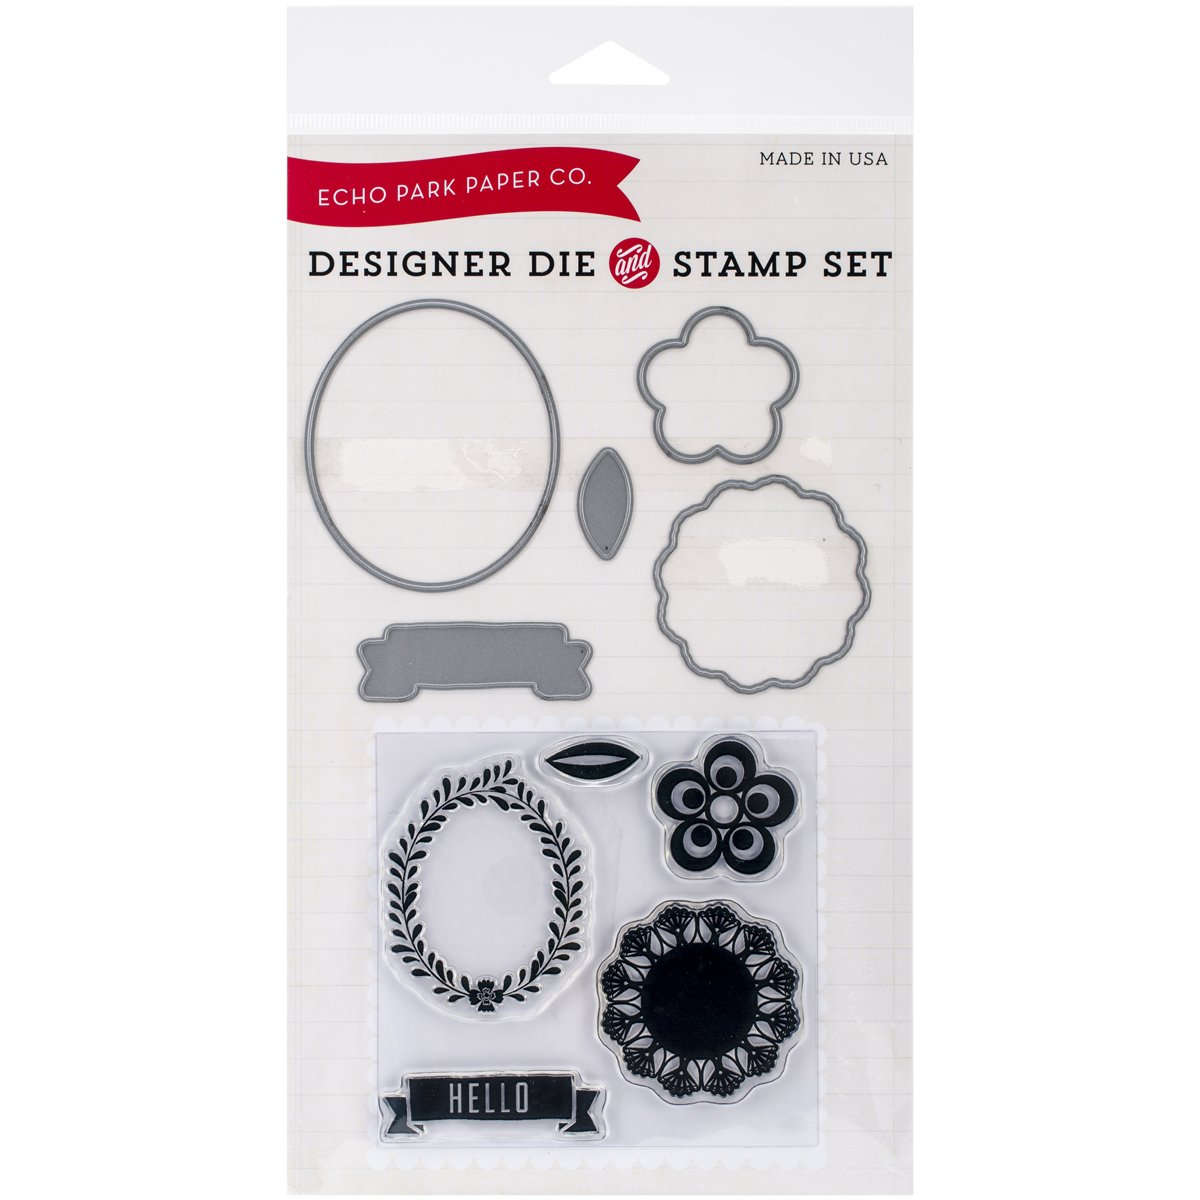 Echo Park Paper Company Simple Hello Die and Stamp Combo by Echo Park Paper B00KQKQ8PA